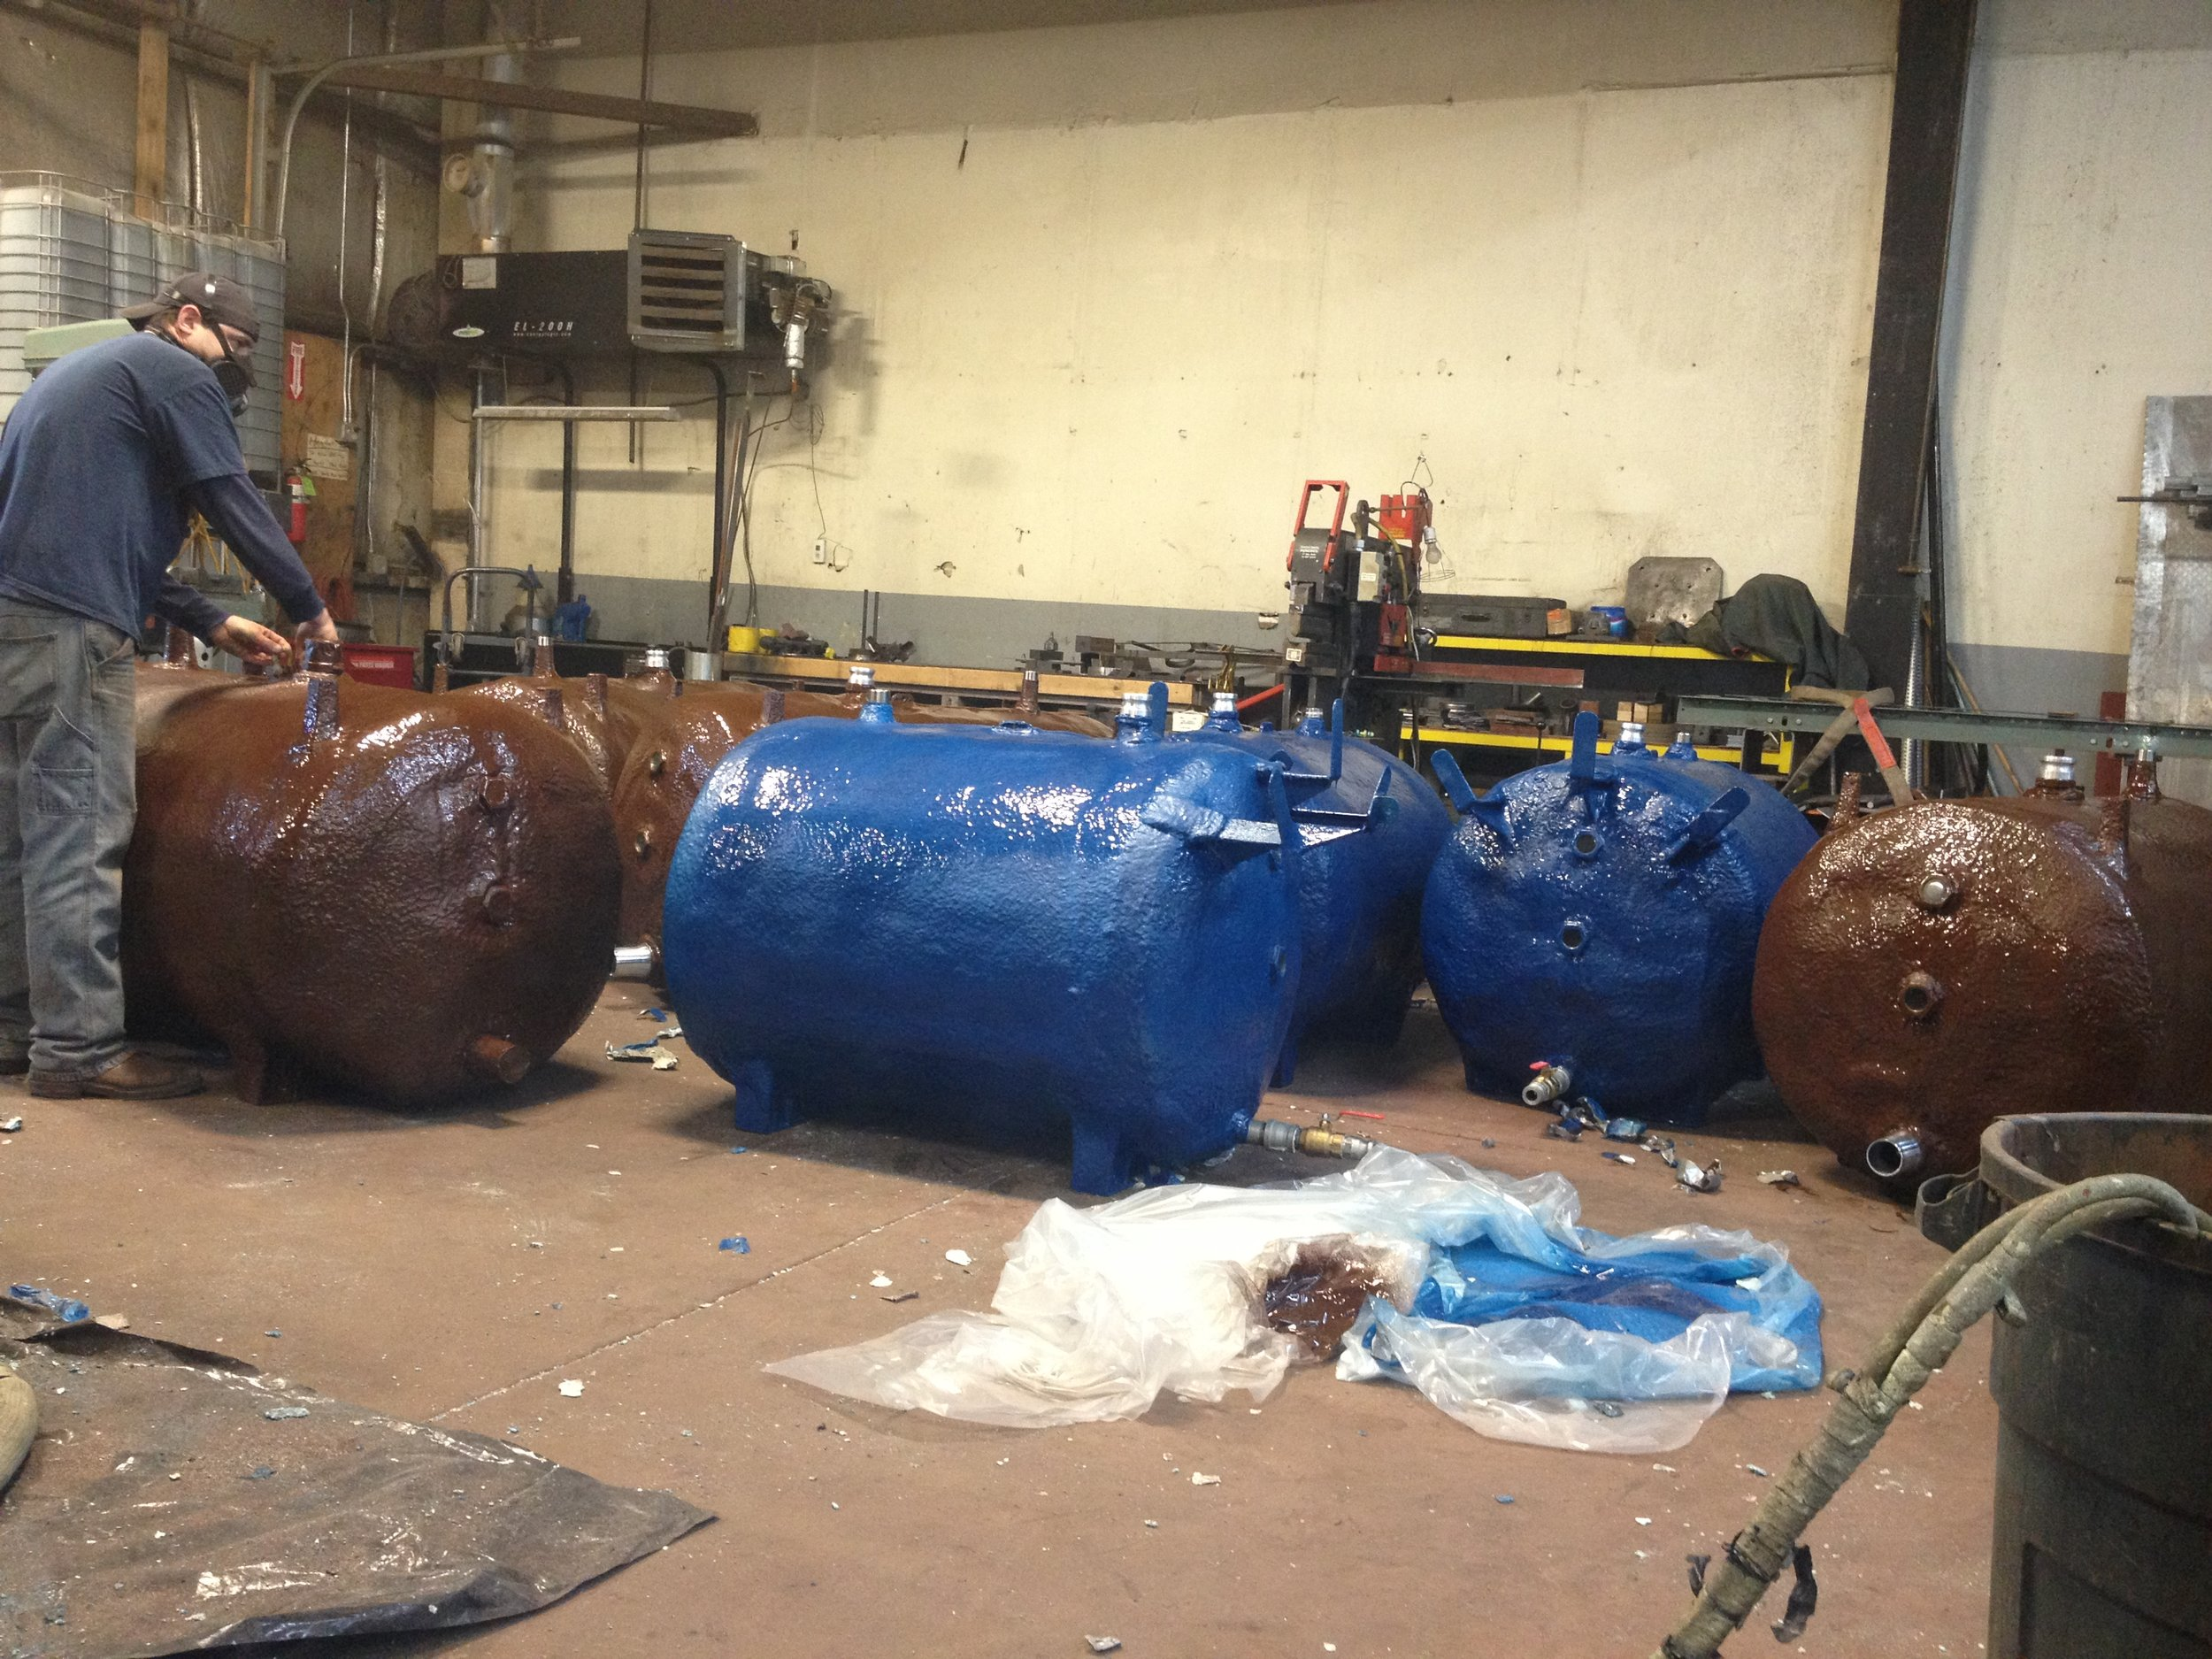 Urethane and polyshield applications for rural Alaska. The blue tanks are for fresh water usage while the brown tanks are for black water transportation.